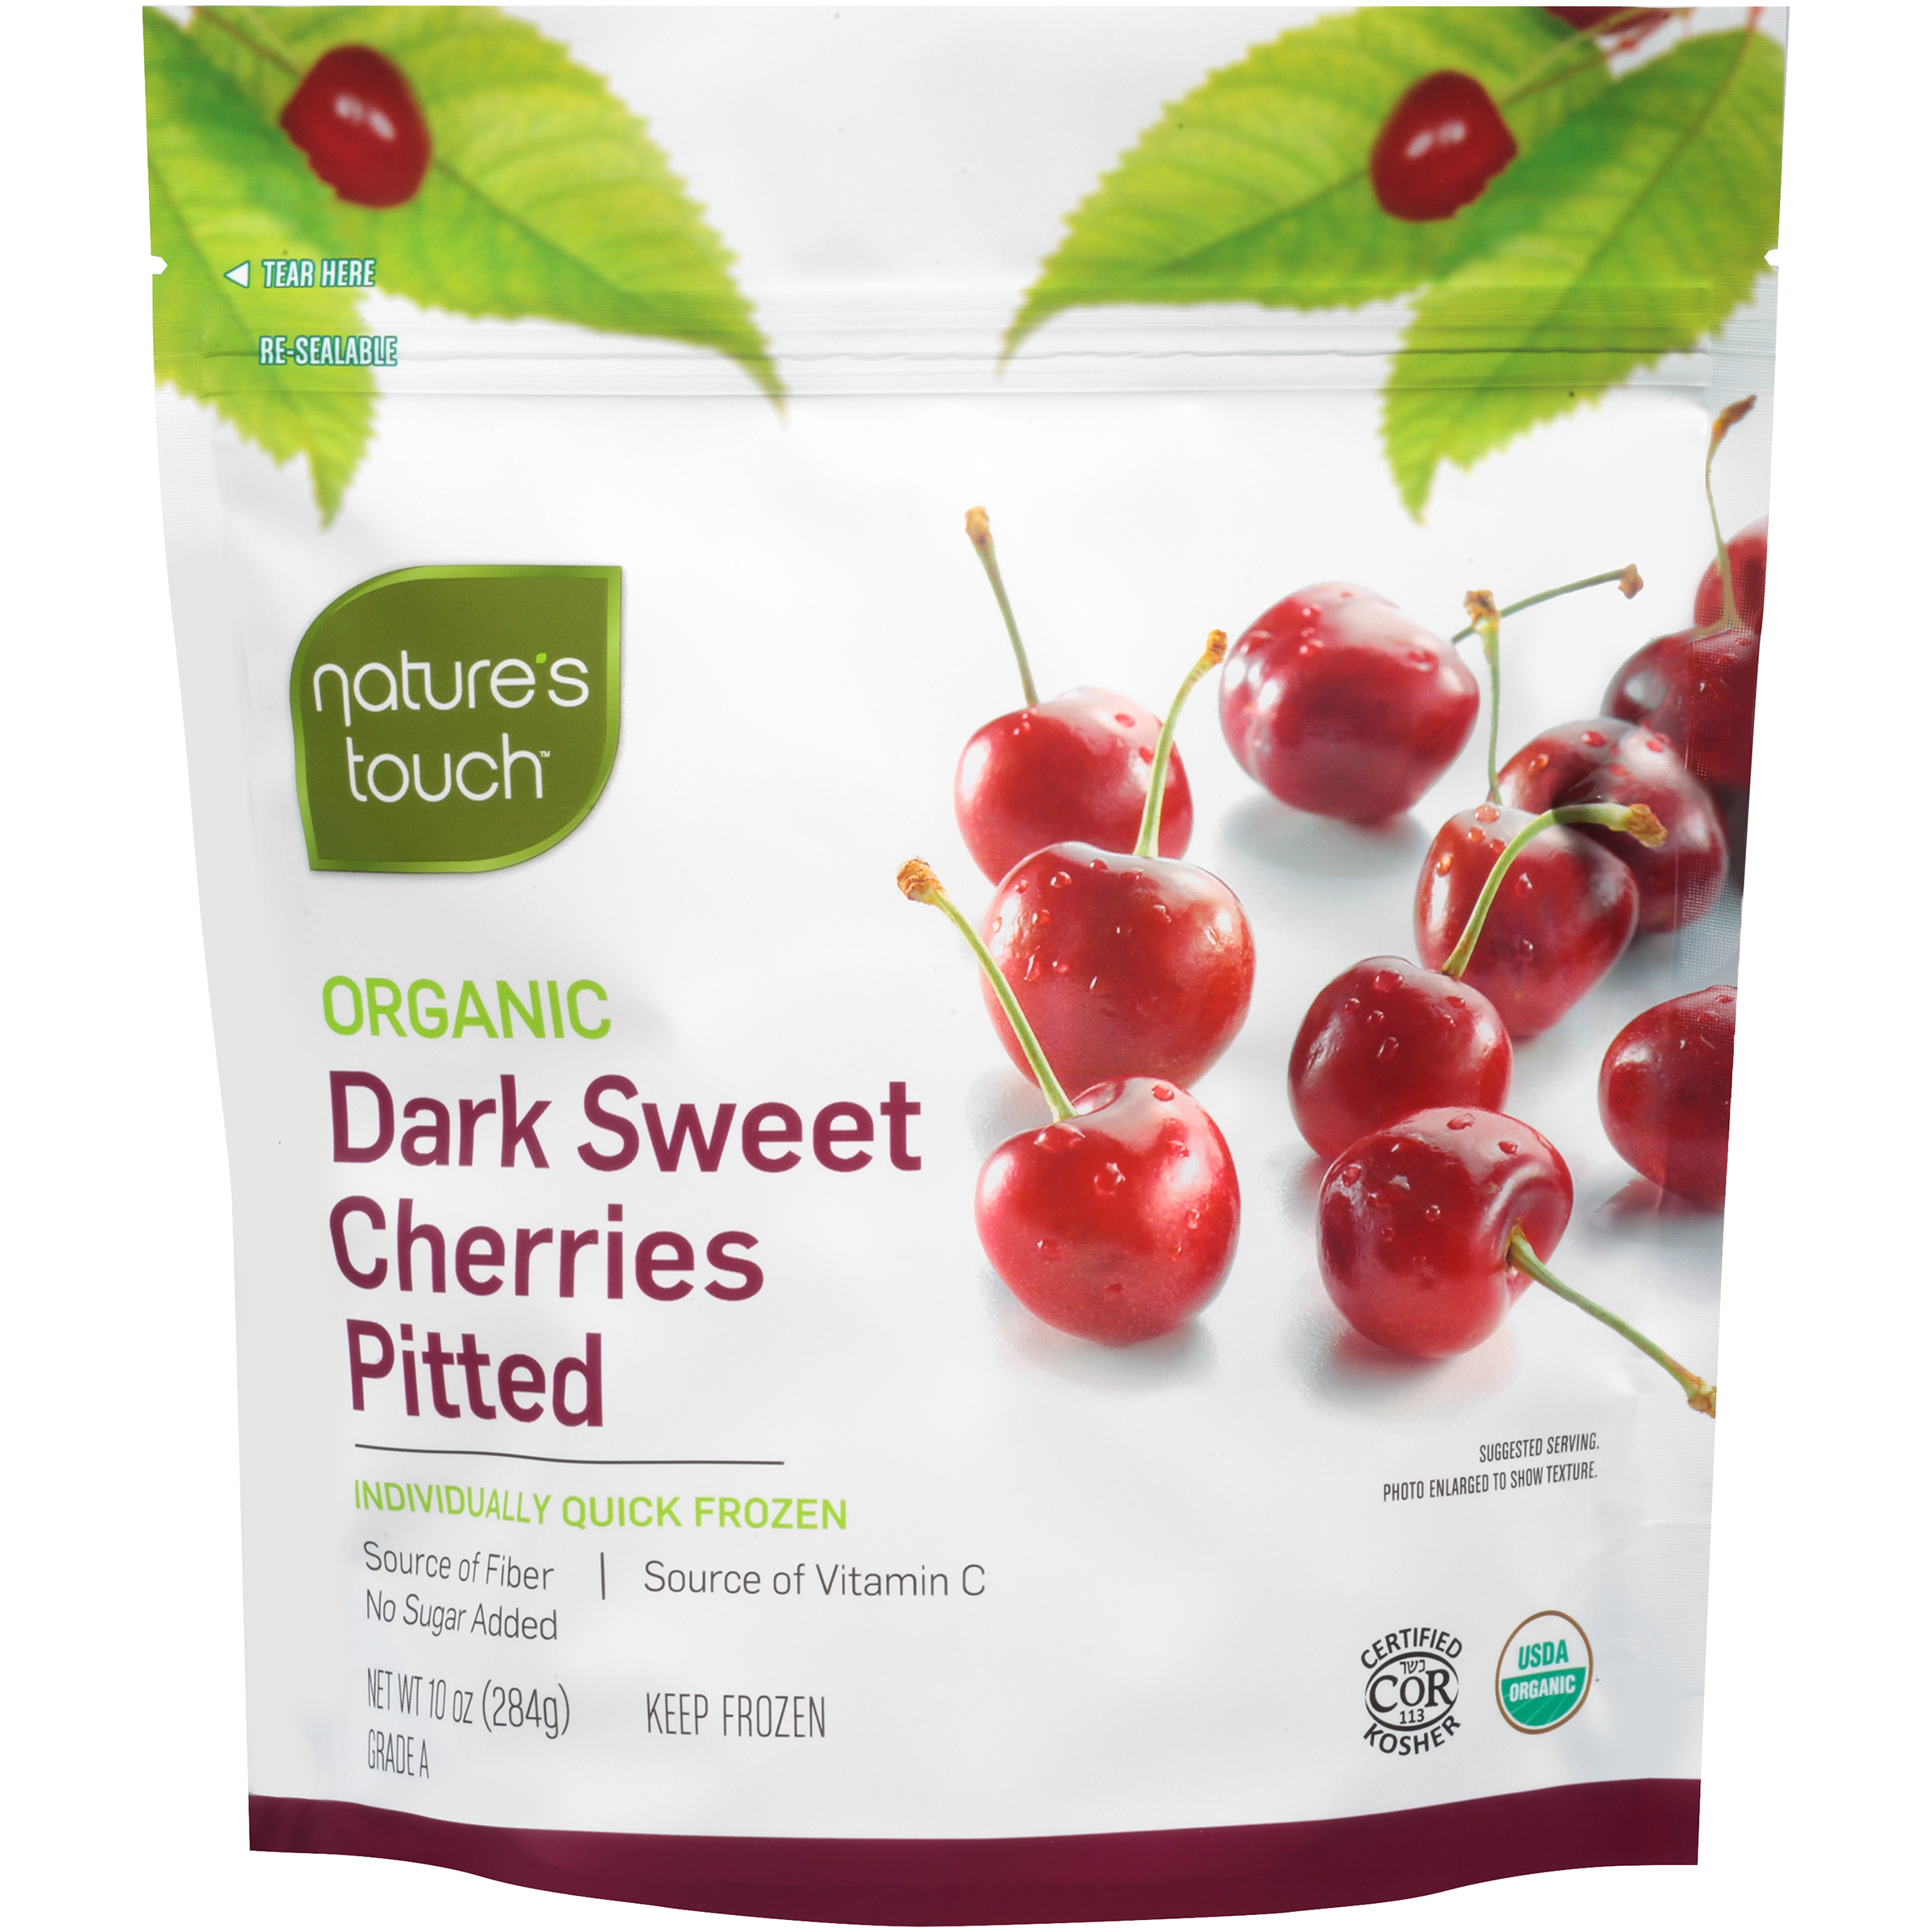 Nature's Touch Organic Dark Sweet Cherries Pitted, 10 oz., (8-Pack) by Nature's Touch